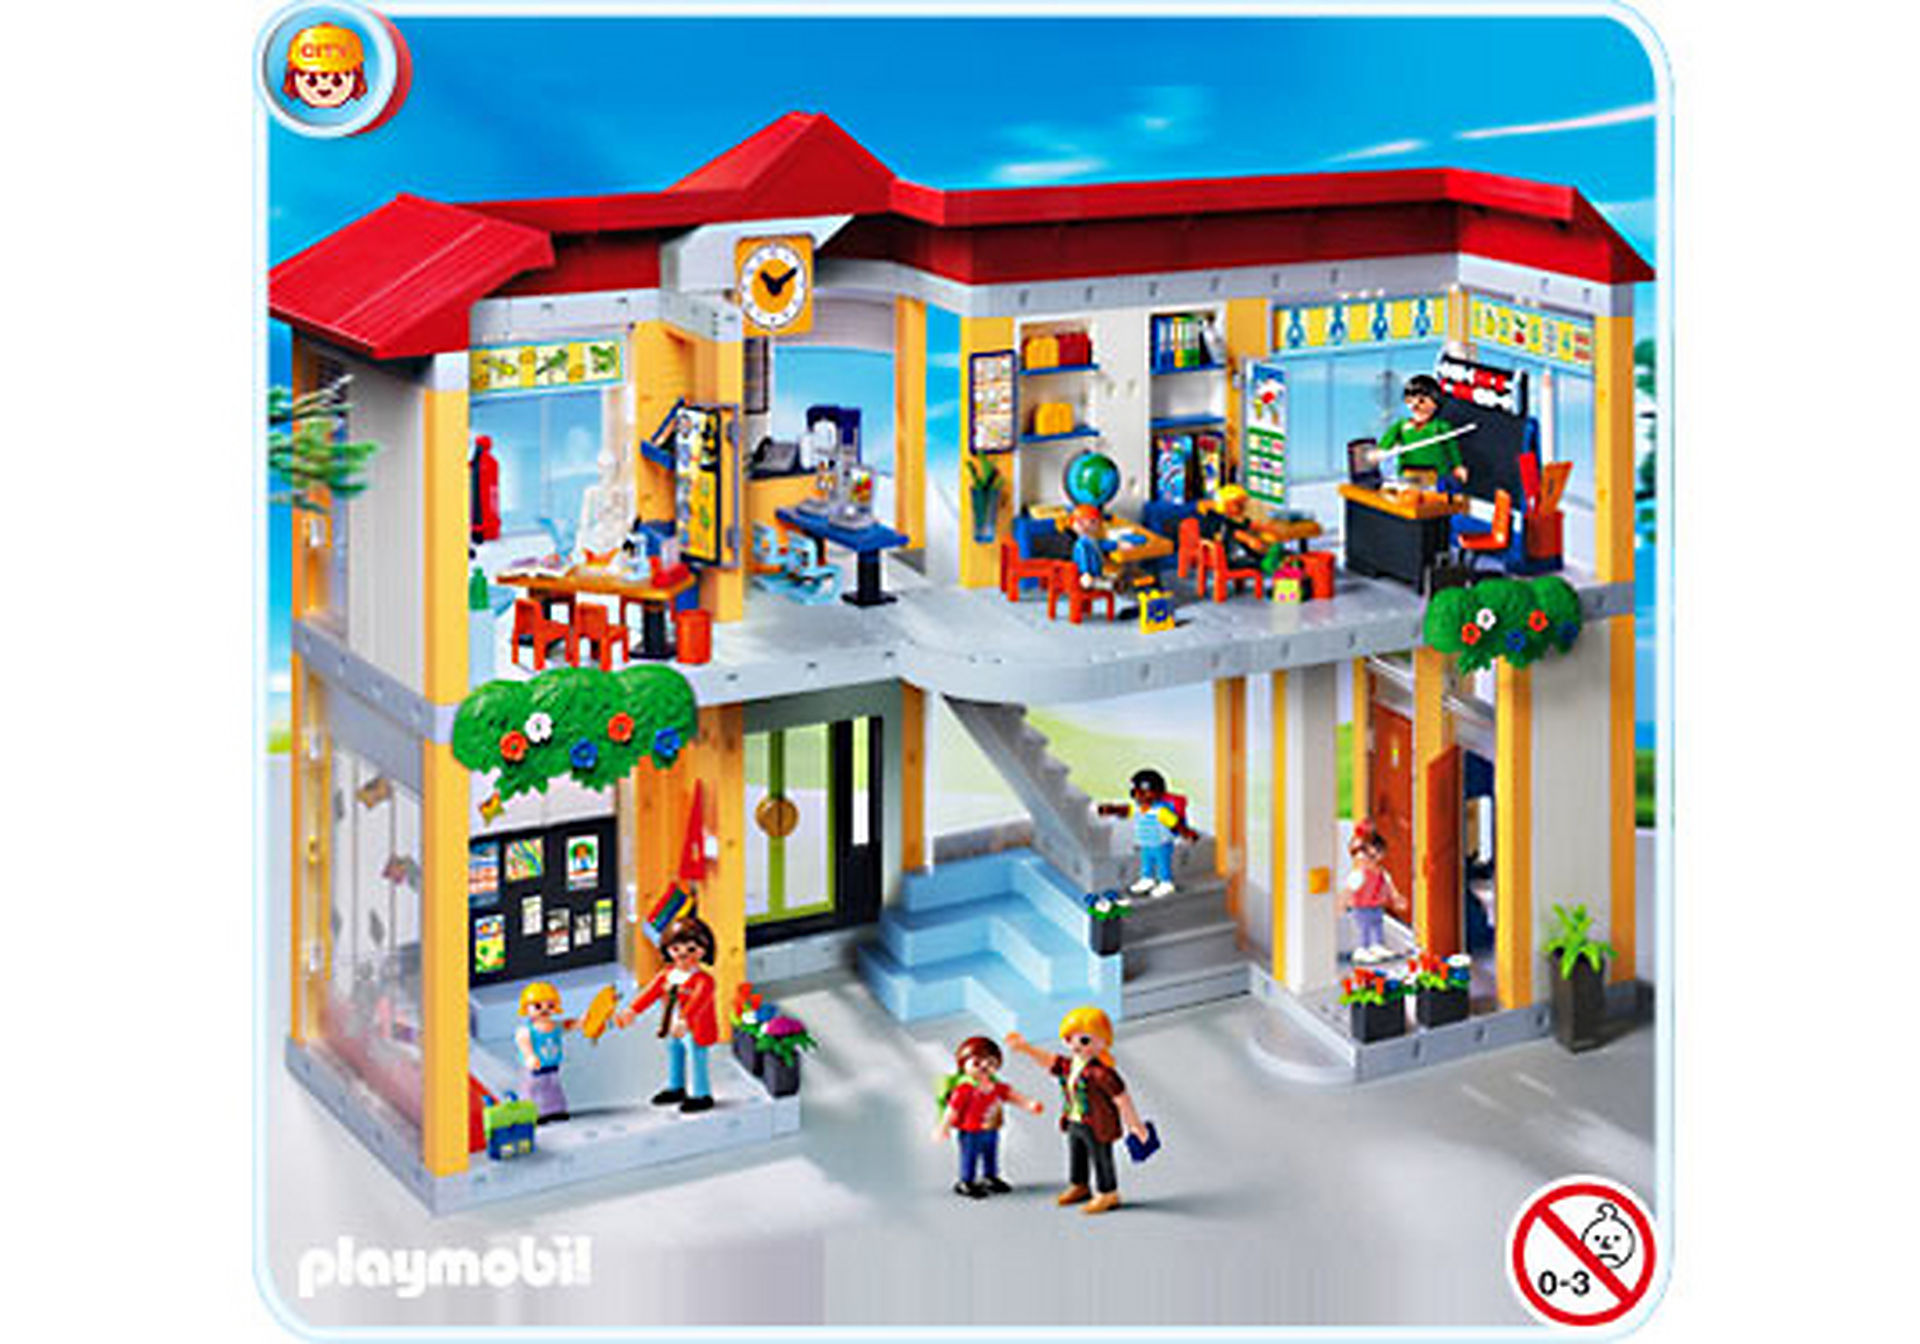 http://media.playmobil.com/i/playmobil/4324-A_product_detail/Große Schule mit Einrichtung